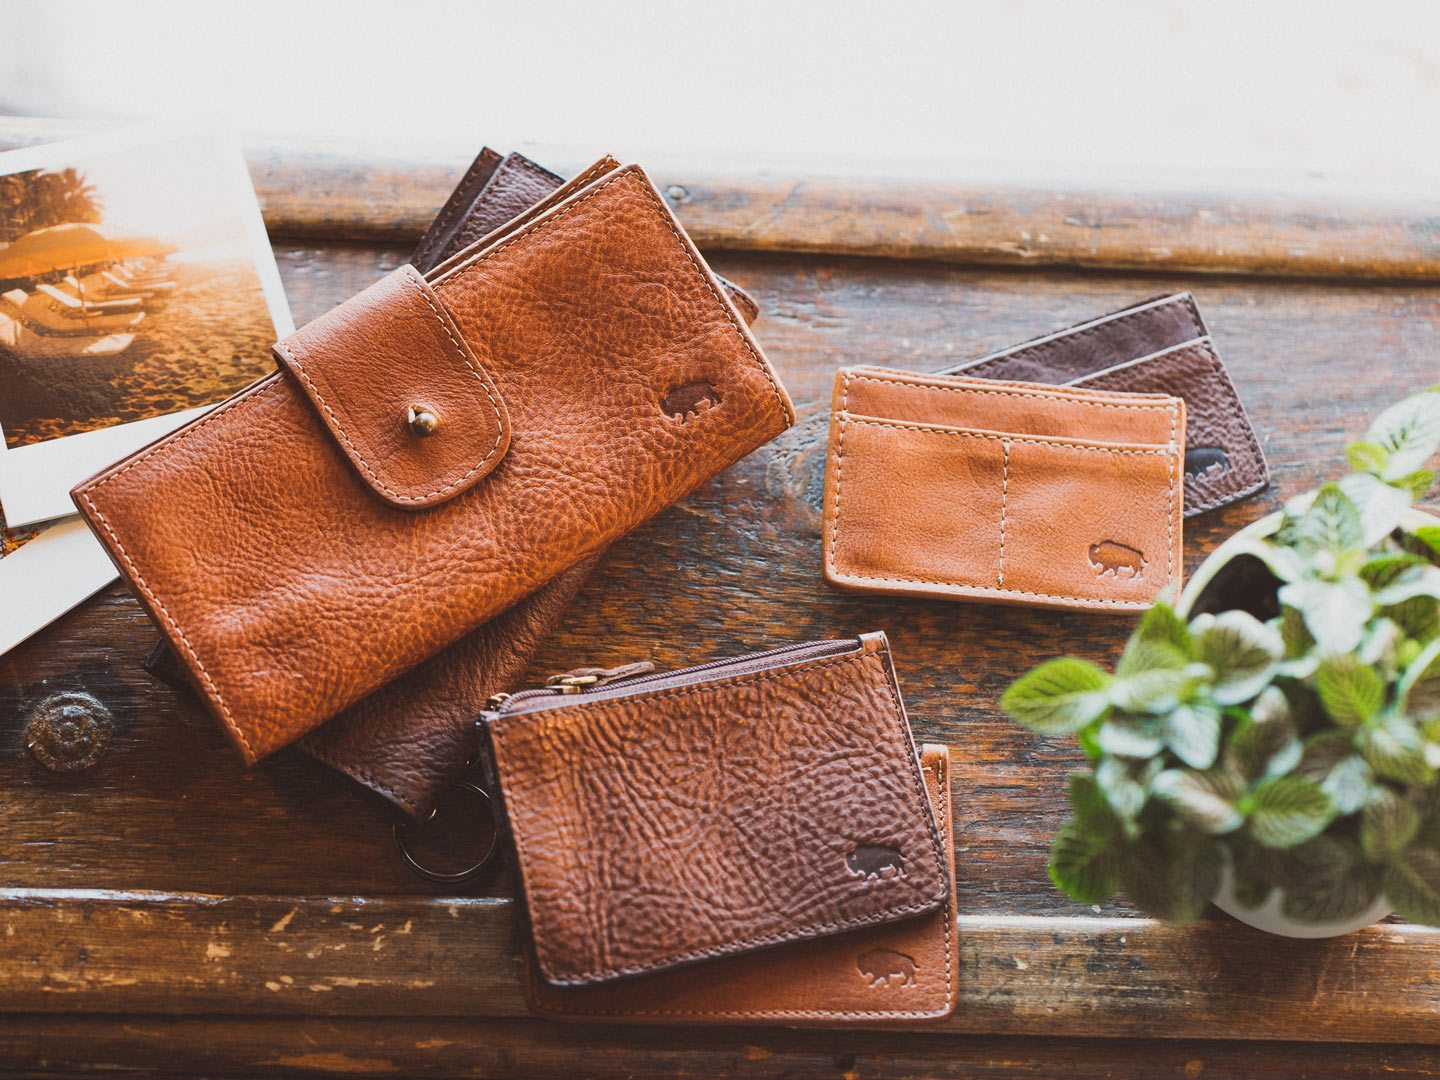 A Complete Women Leather Wallets Purchase Guide